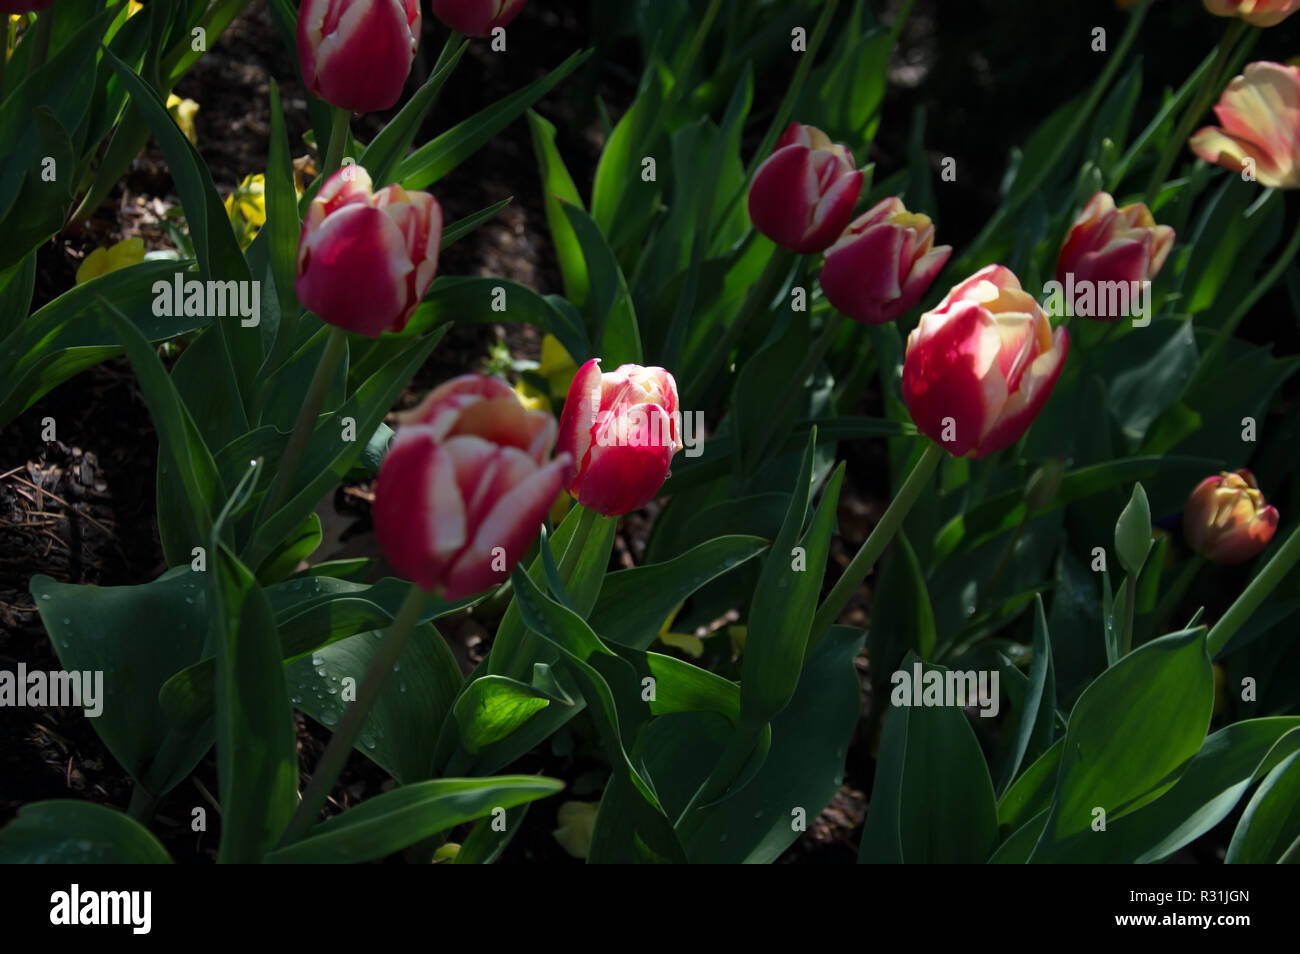 A patch of red and white tulips in darkness, with one tulip lit up by the sun. - Stock Image